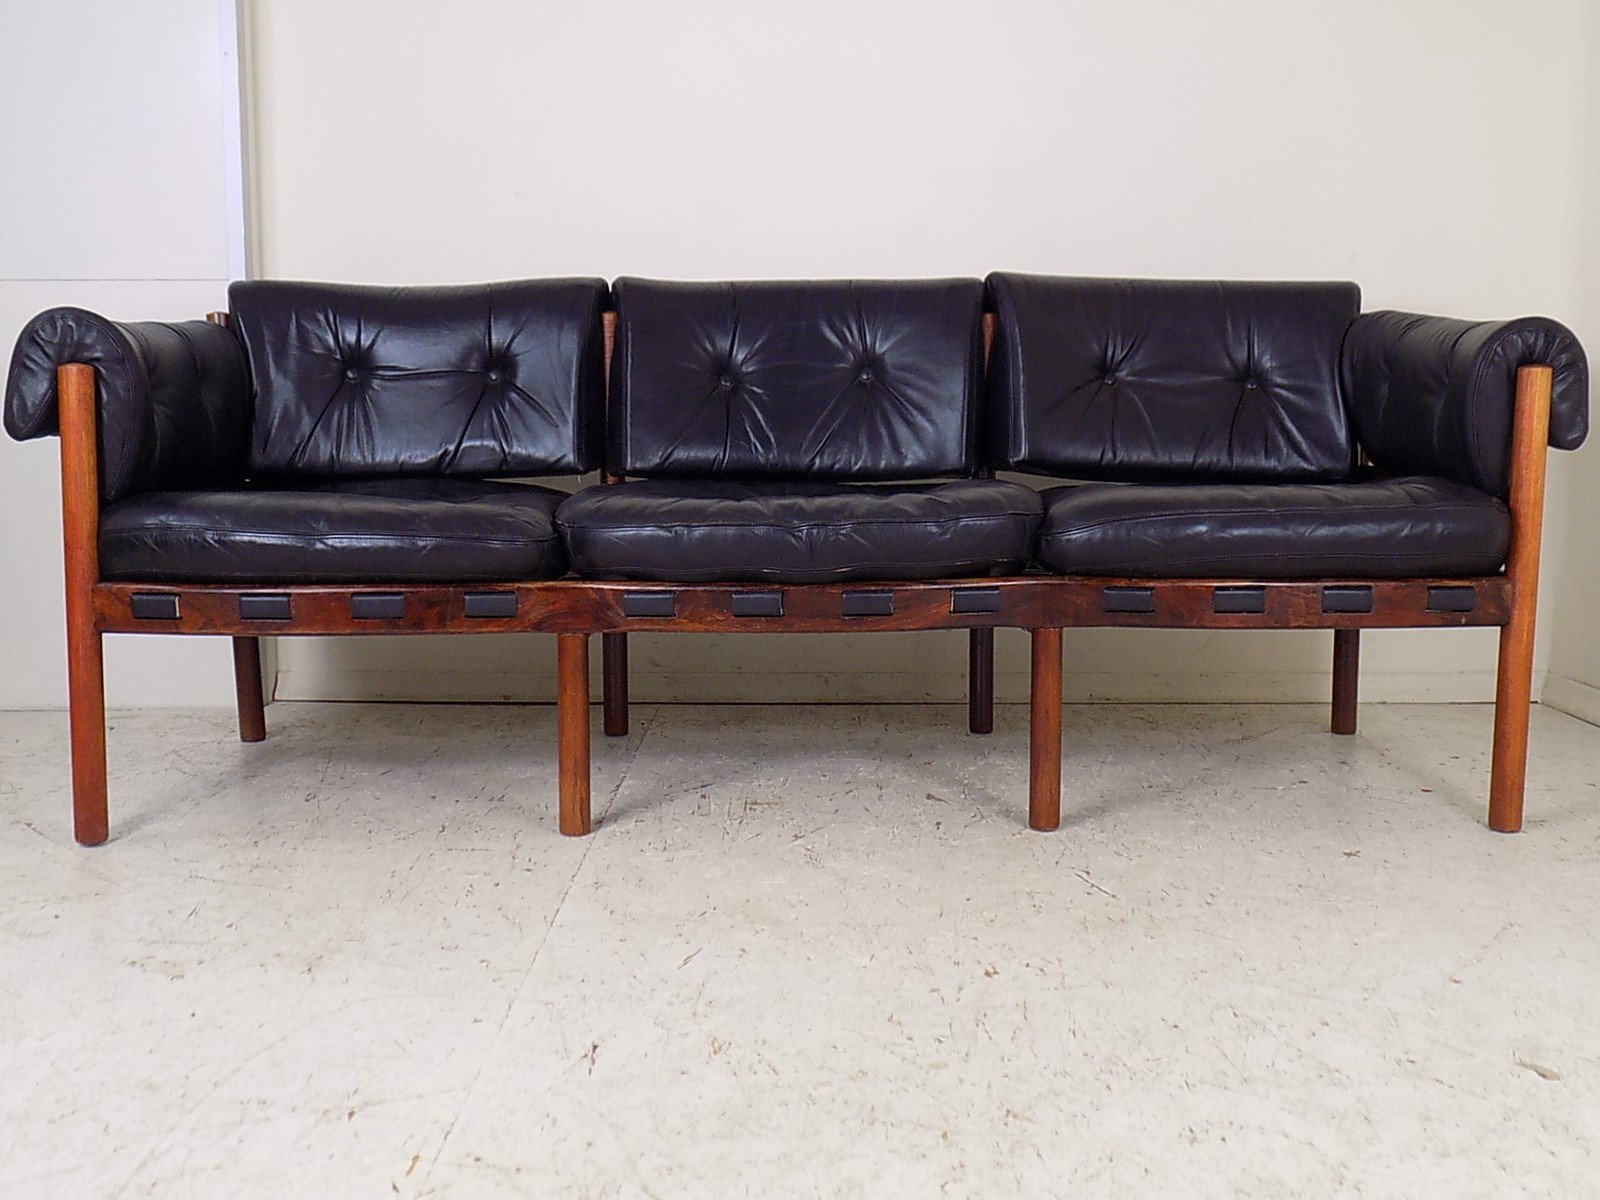 sofa aus palisander leder von arne norell f r coja 1960er bei pamono kaufen. Black Bedroom Furniture Sets. Home Design Ideas